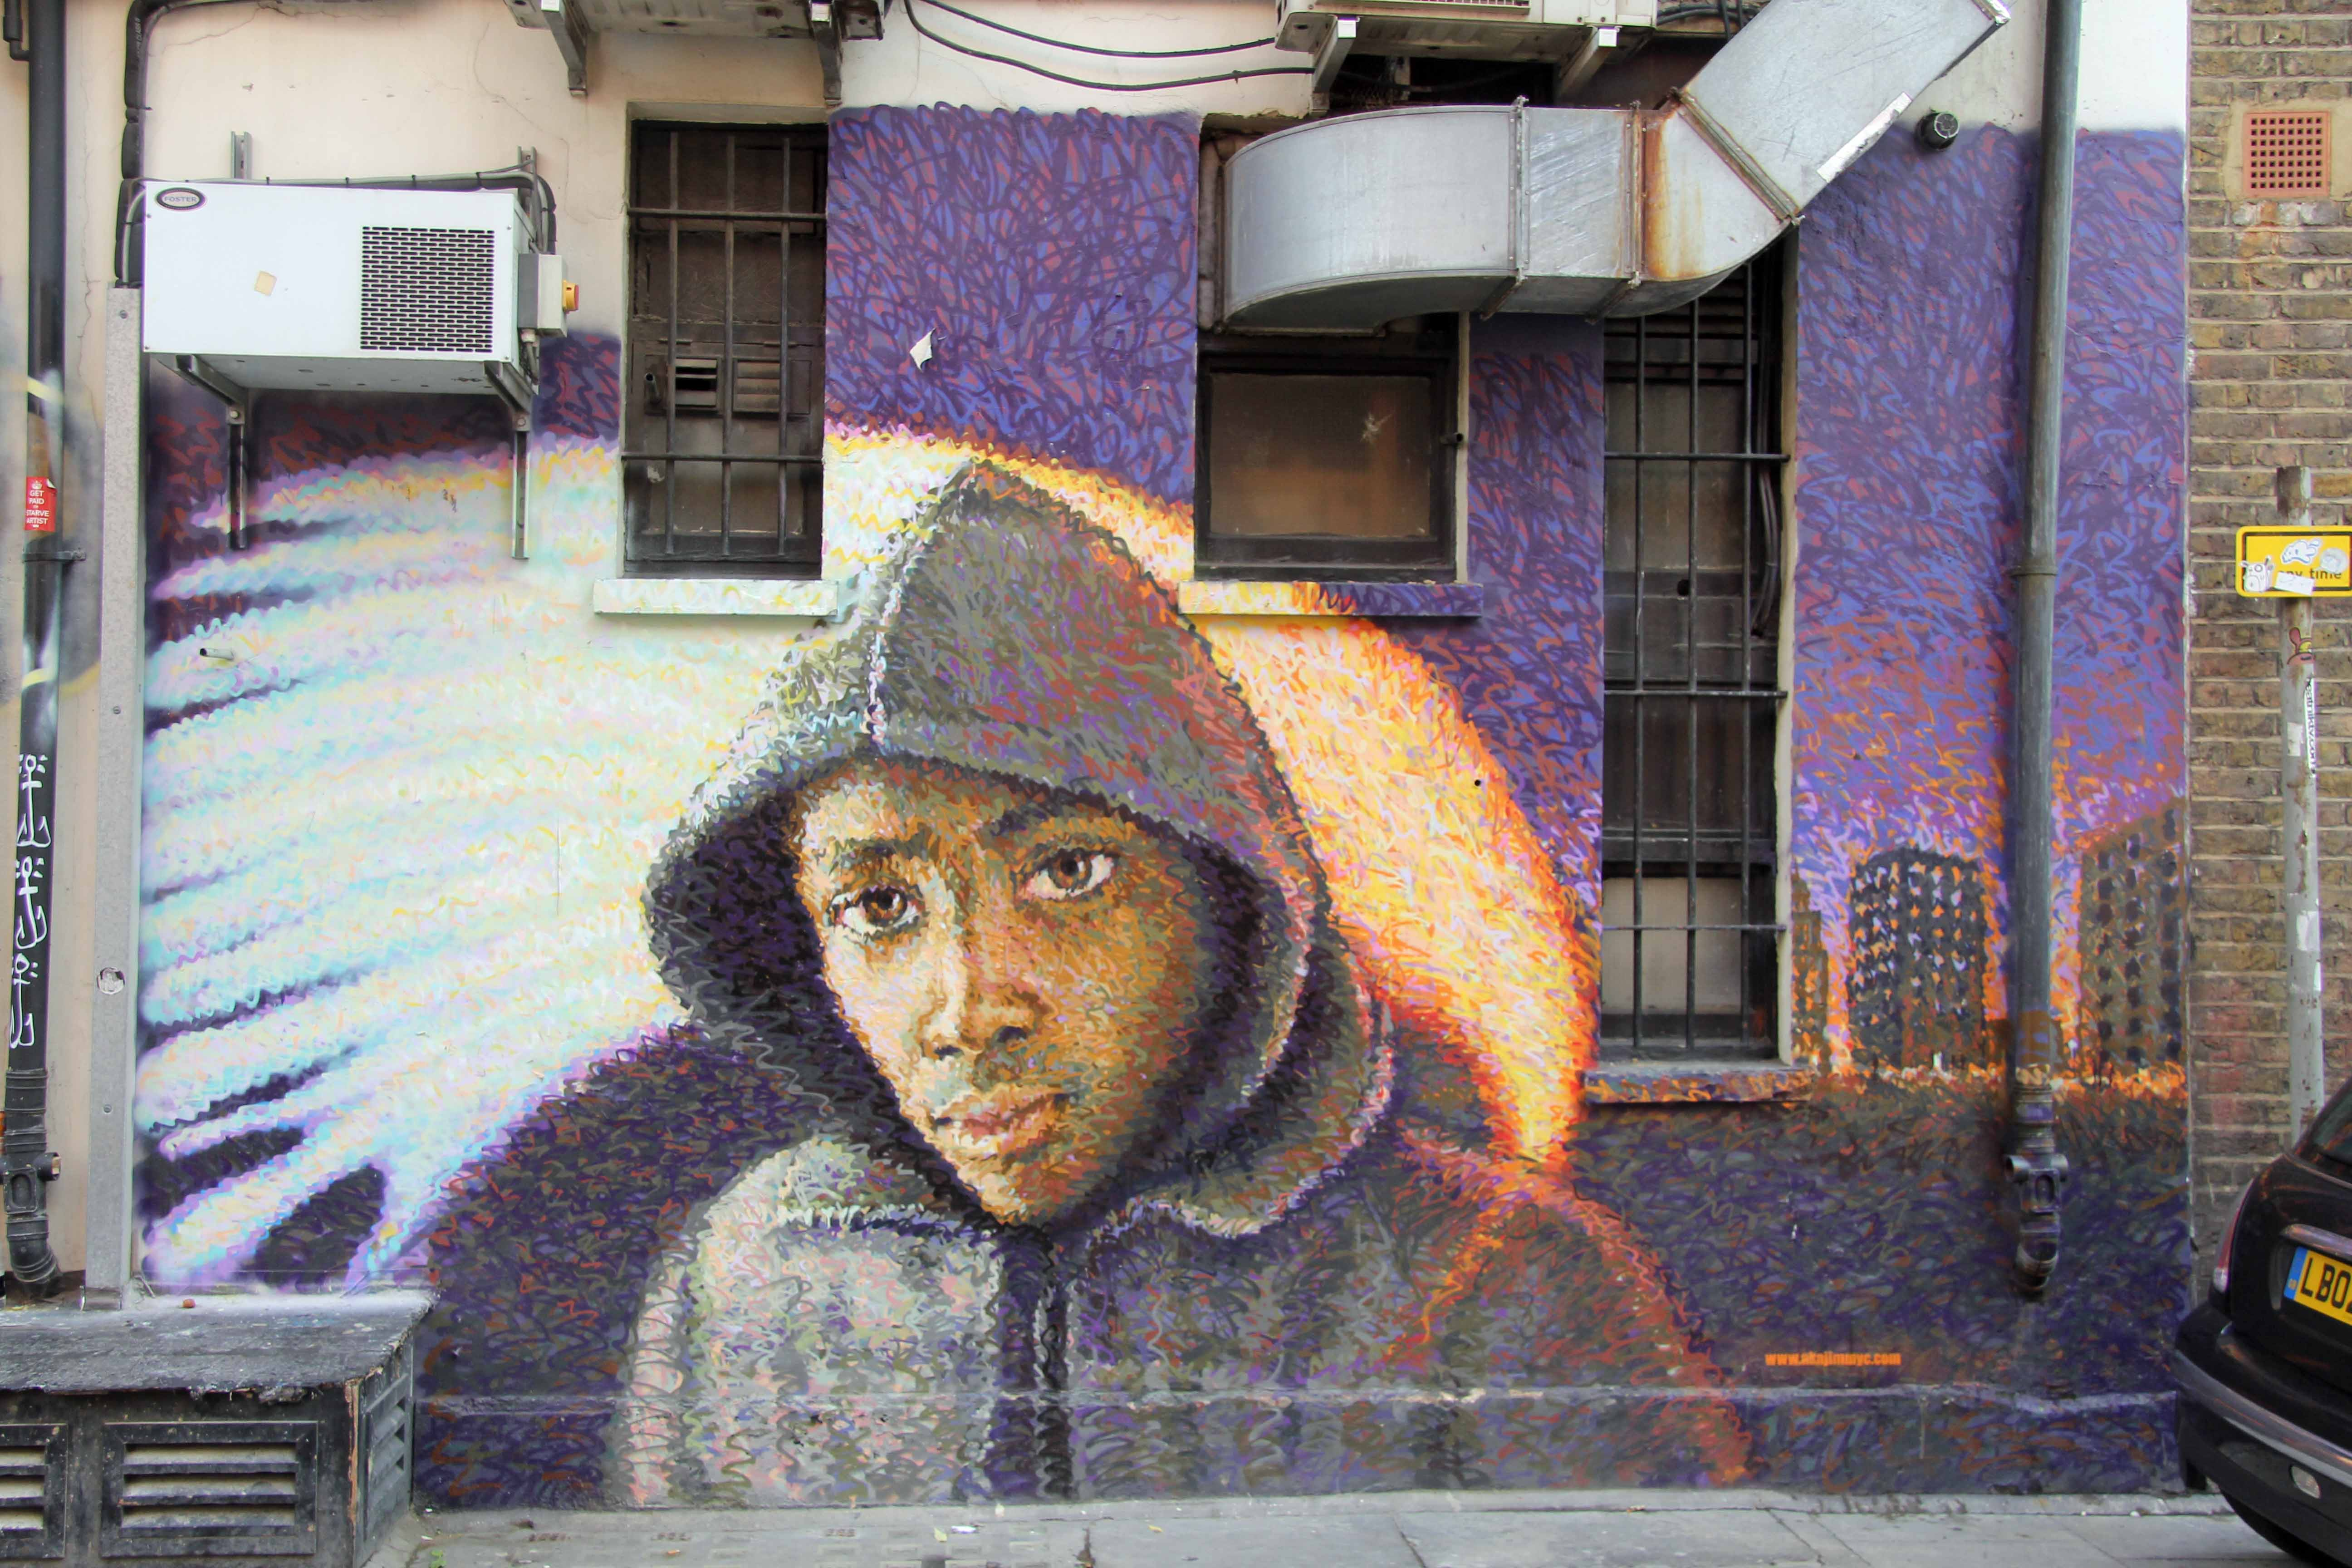 Boy In Da Hood: Pointilist Street Art by Jimmy C in London